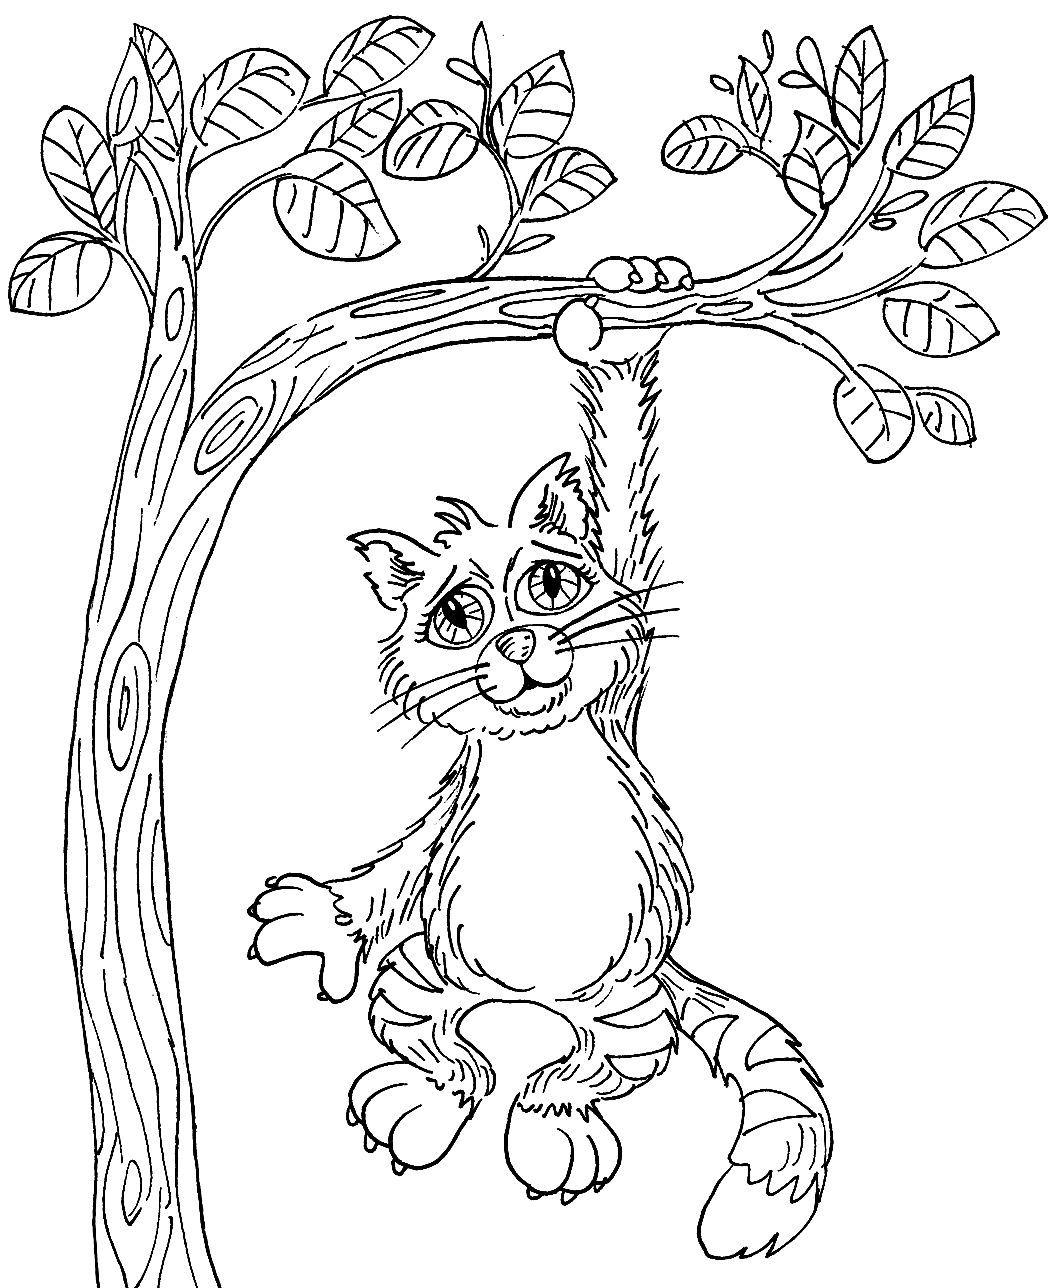 Hang In There Kitty f quot Printables amp Coloring